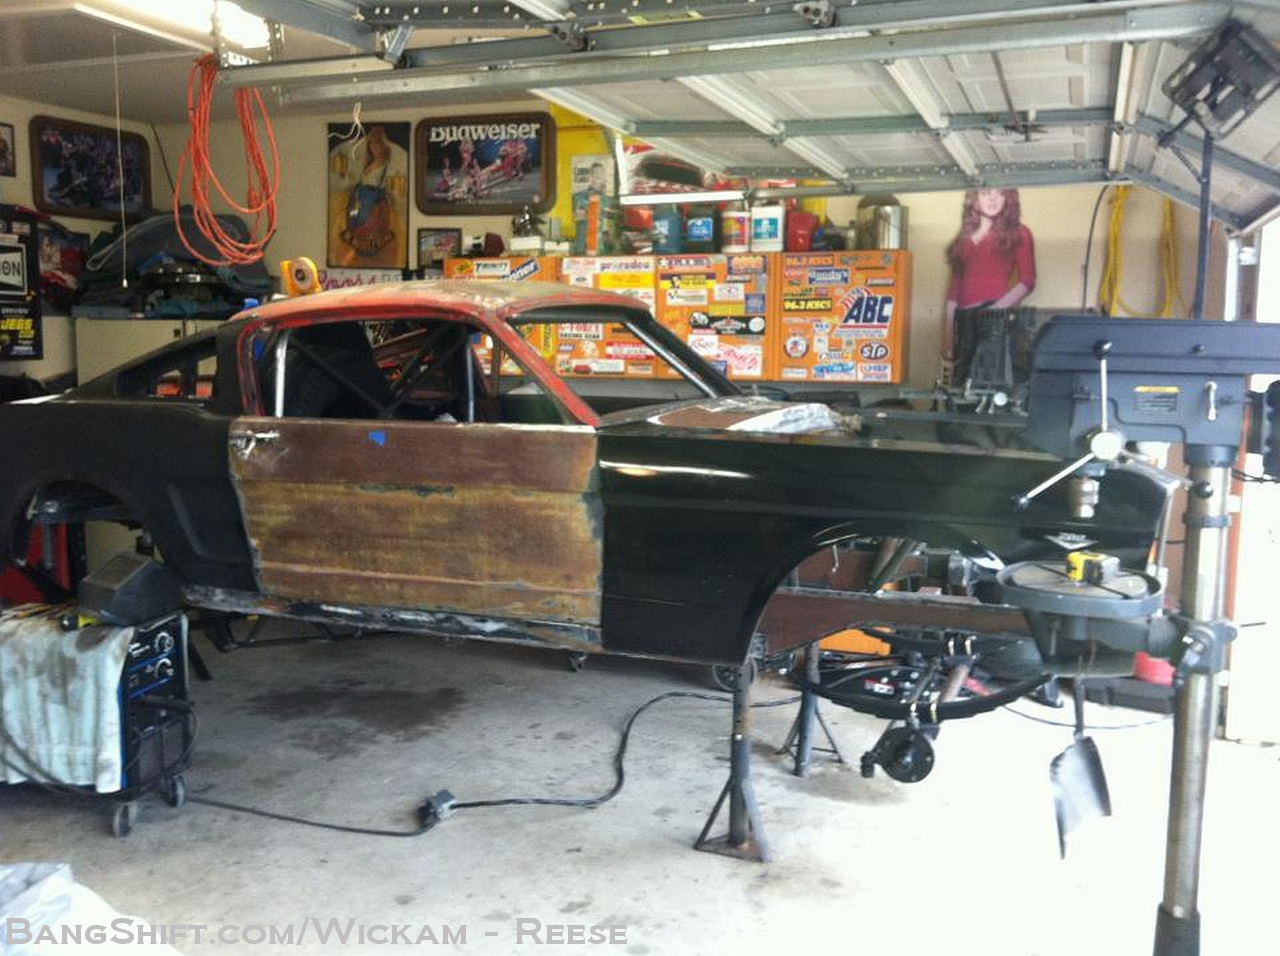 Bangshift Com The War Horse  A 1966 Straight Axle Mustang Fast Back That Punches All The Right